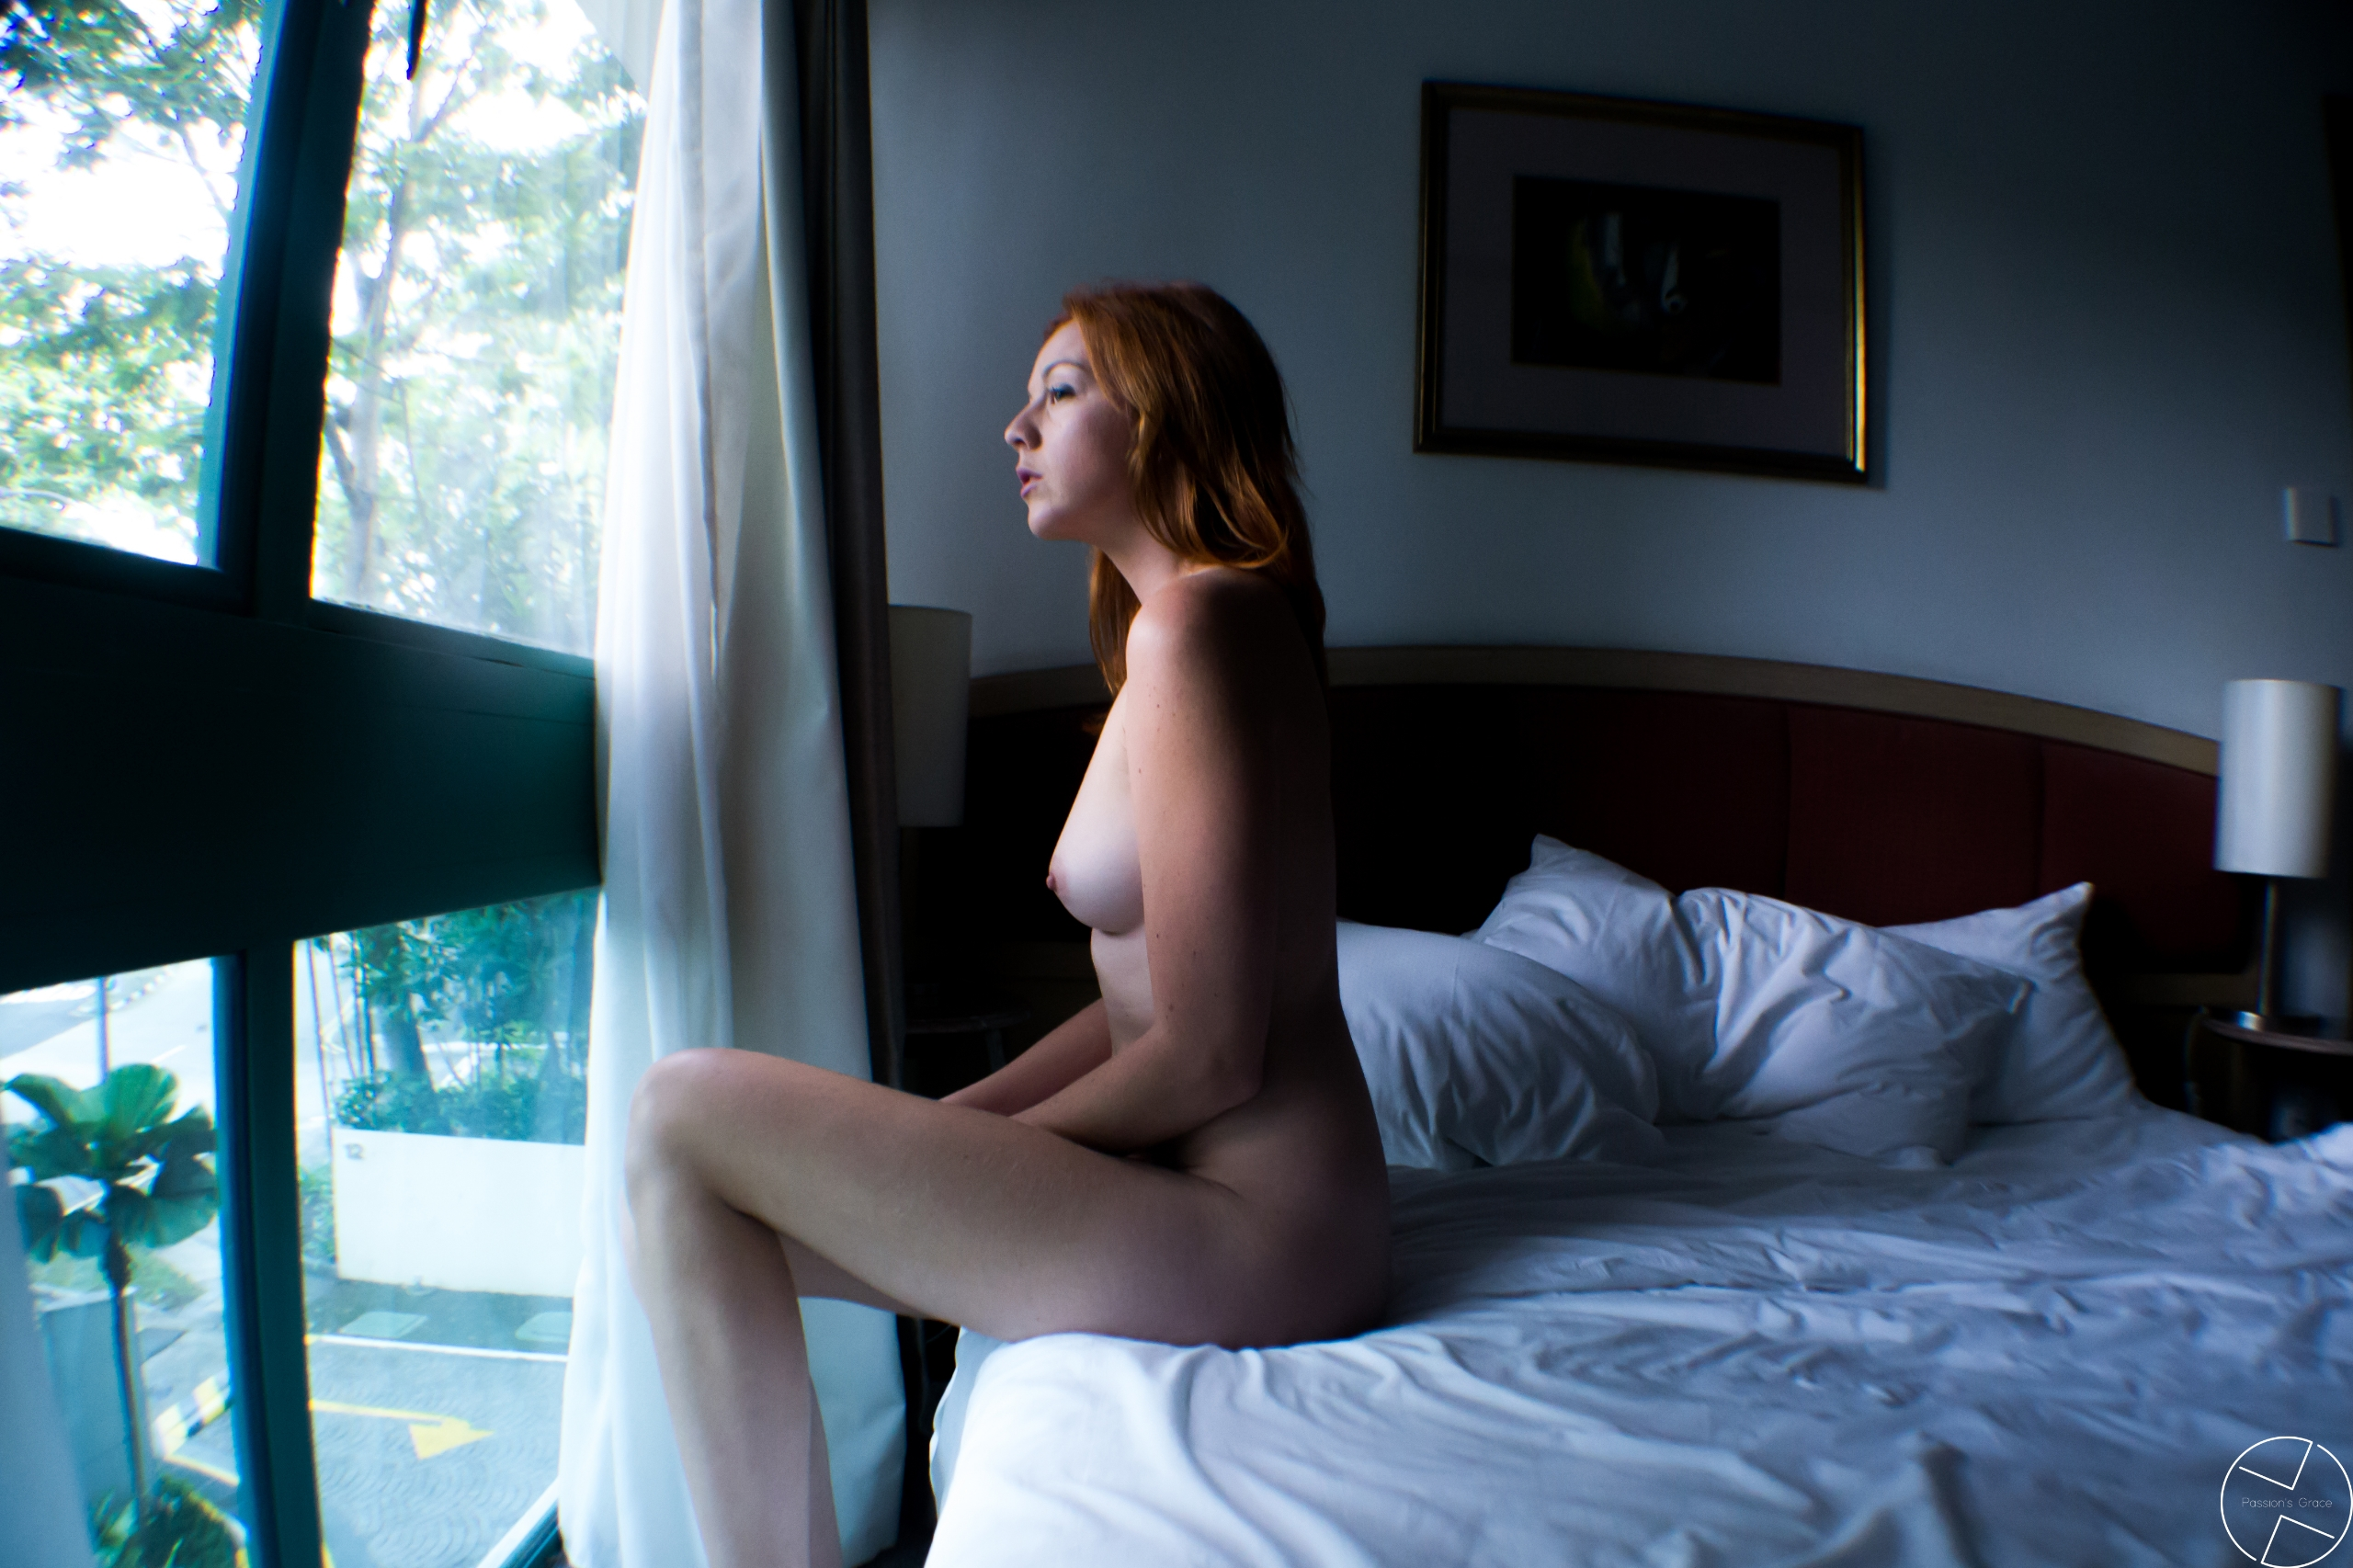 Saturday Morning. Model: Elen - nsfw - passionsgrace | ello